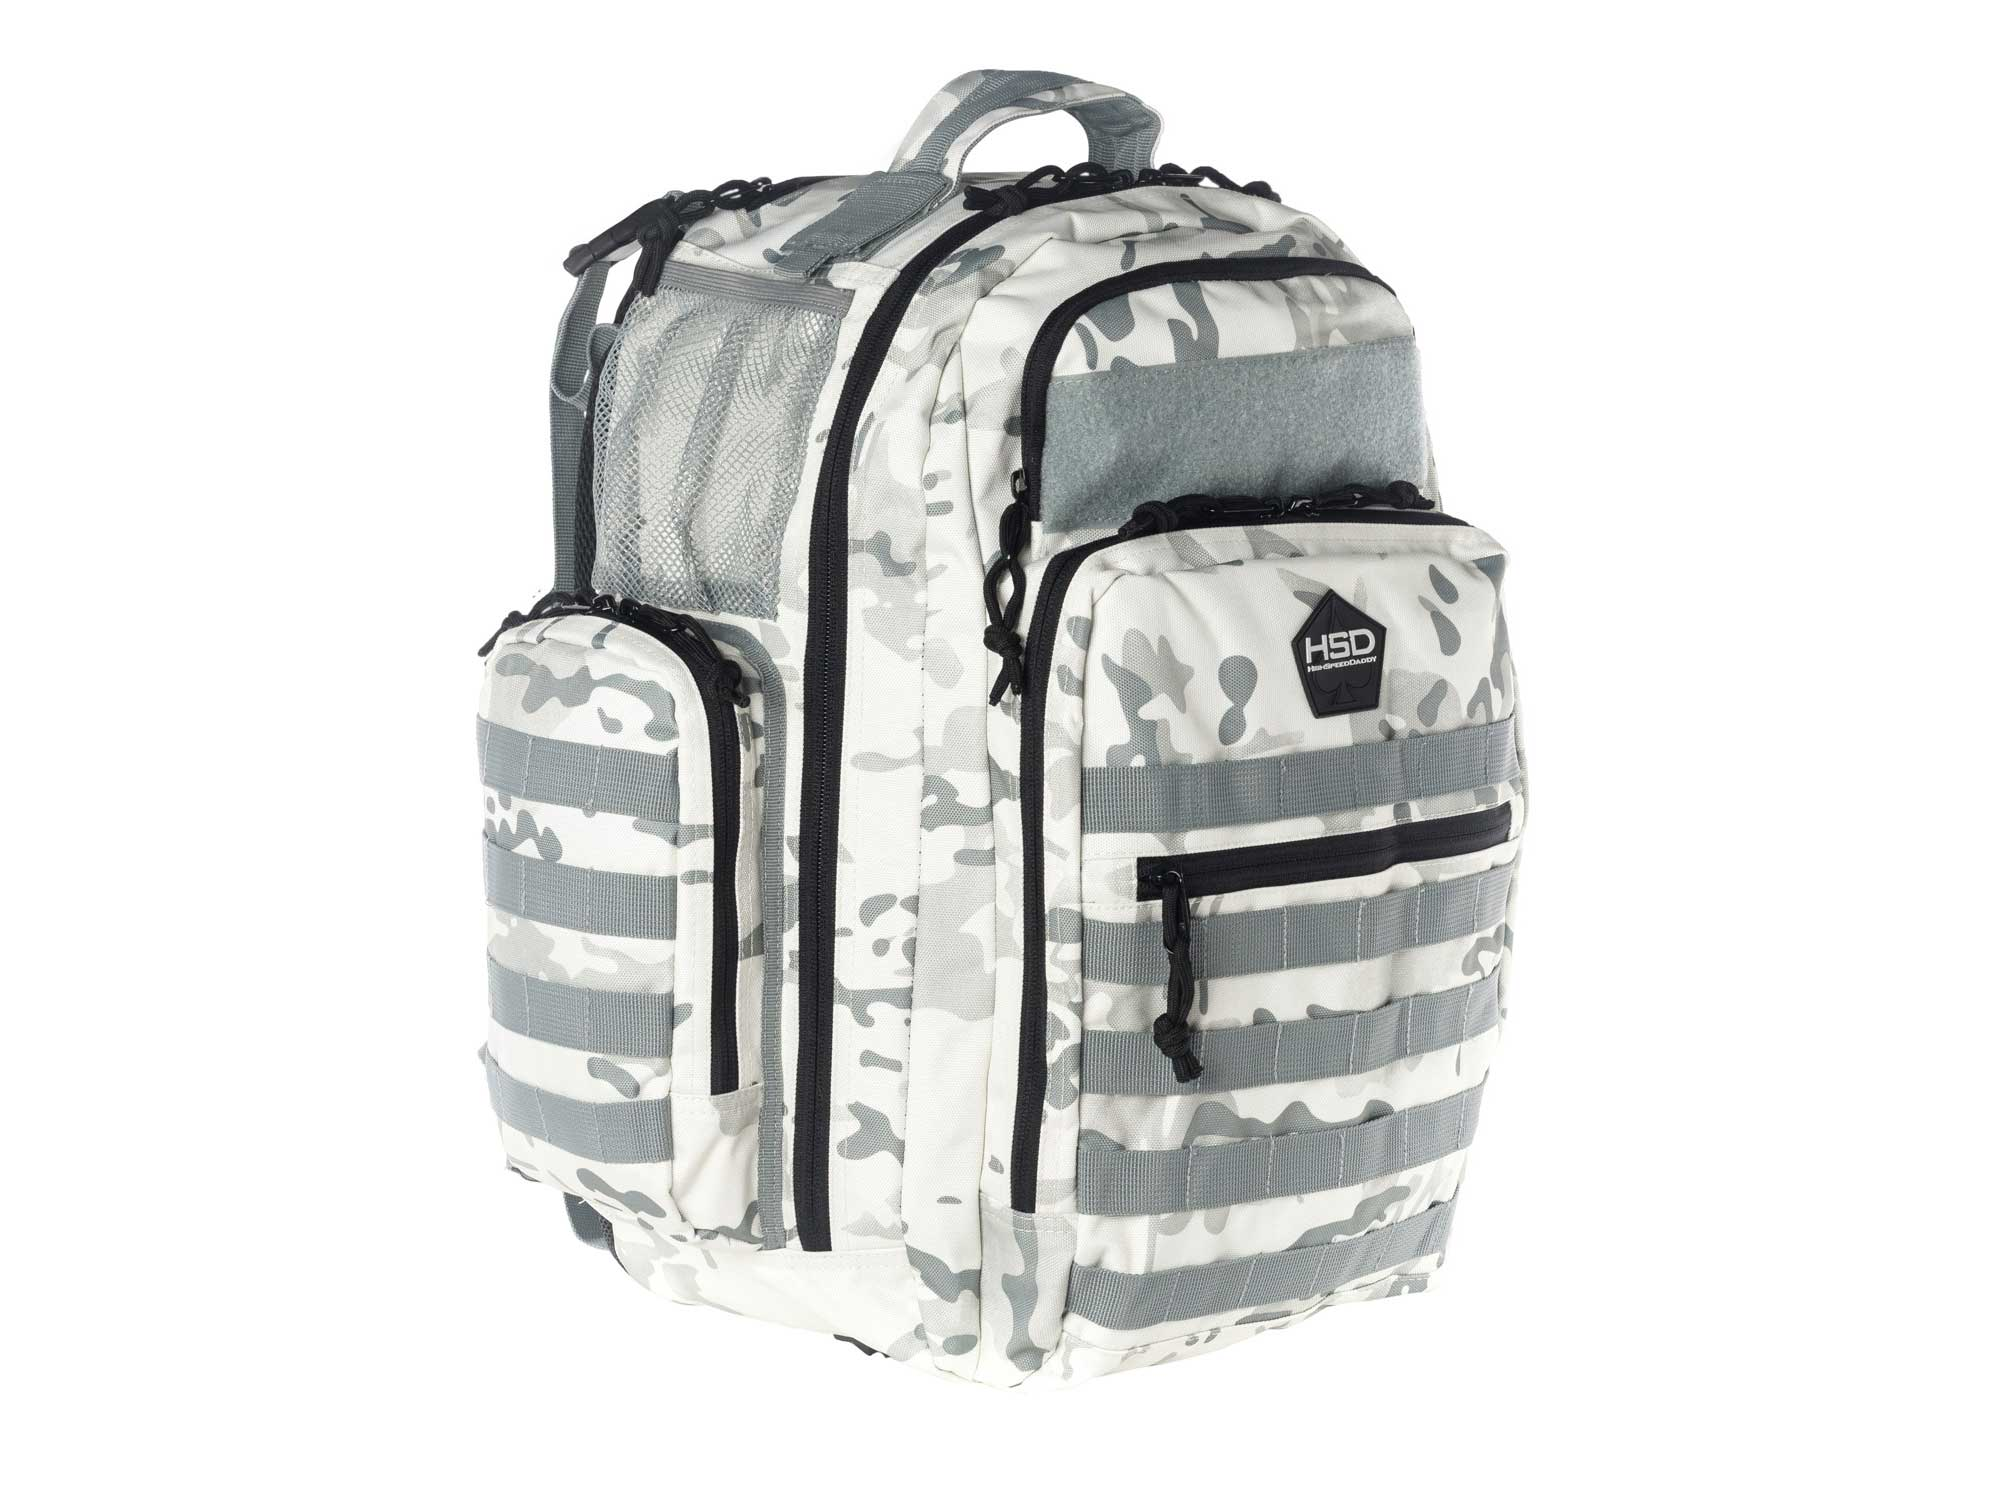 The New High Speed Daddy Snow Camo Diaper Bag Backpack Is Here!